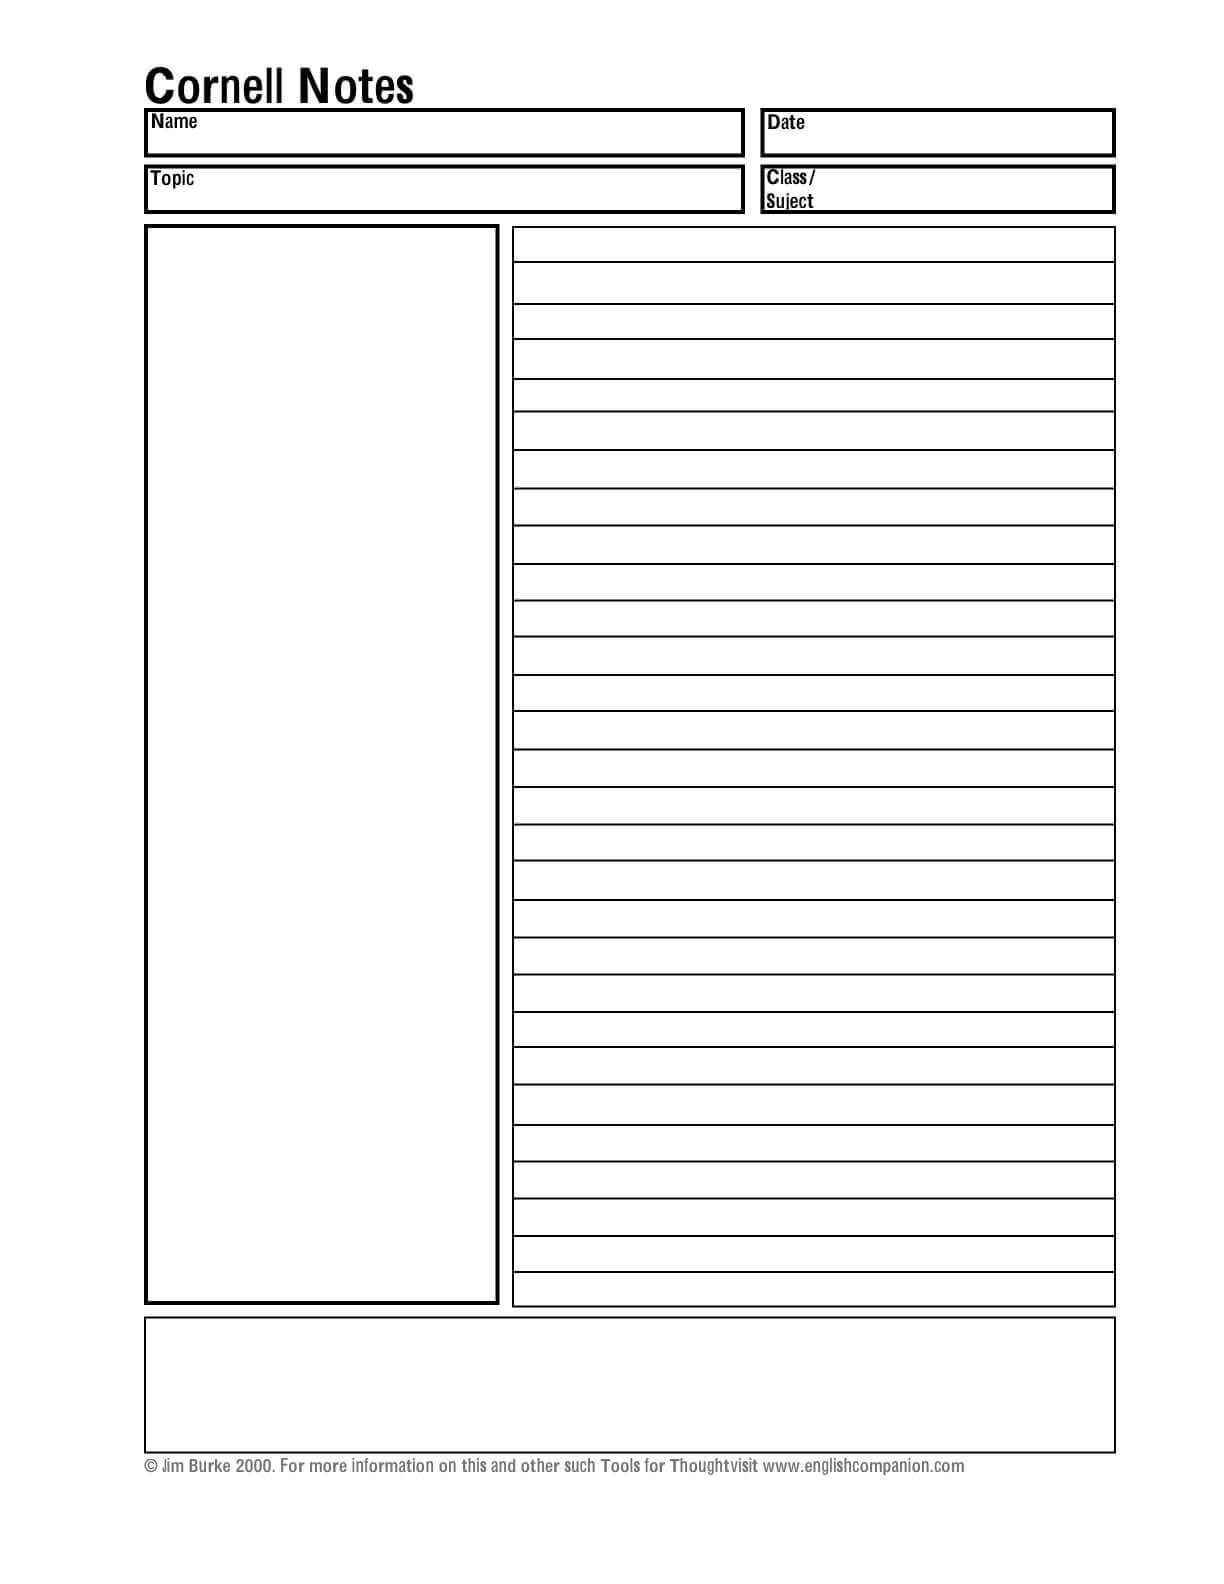 Cornell Notes Template Word Abq2Iv2D – وادي المشمش Within Cornell Note Template Word